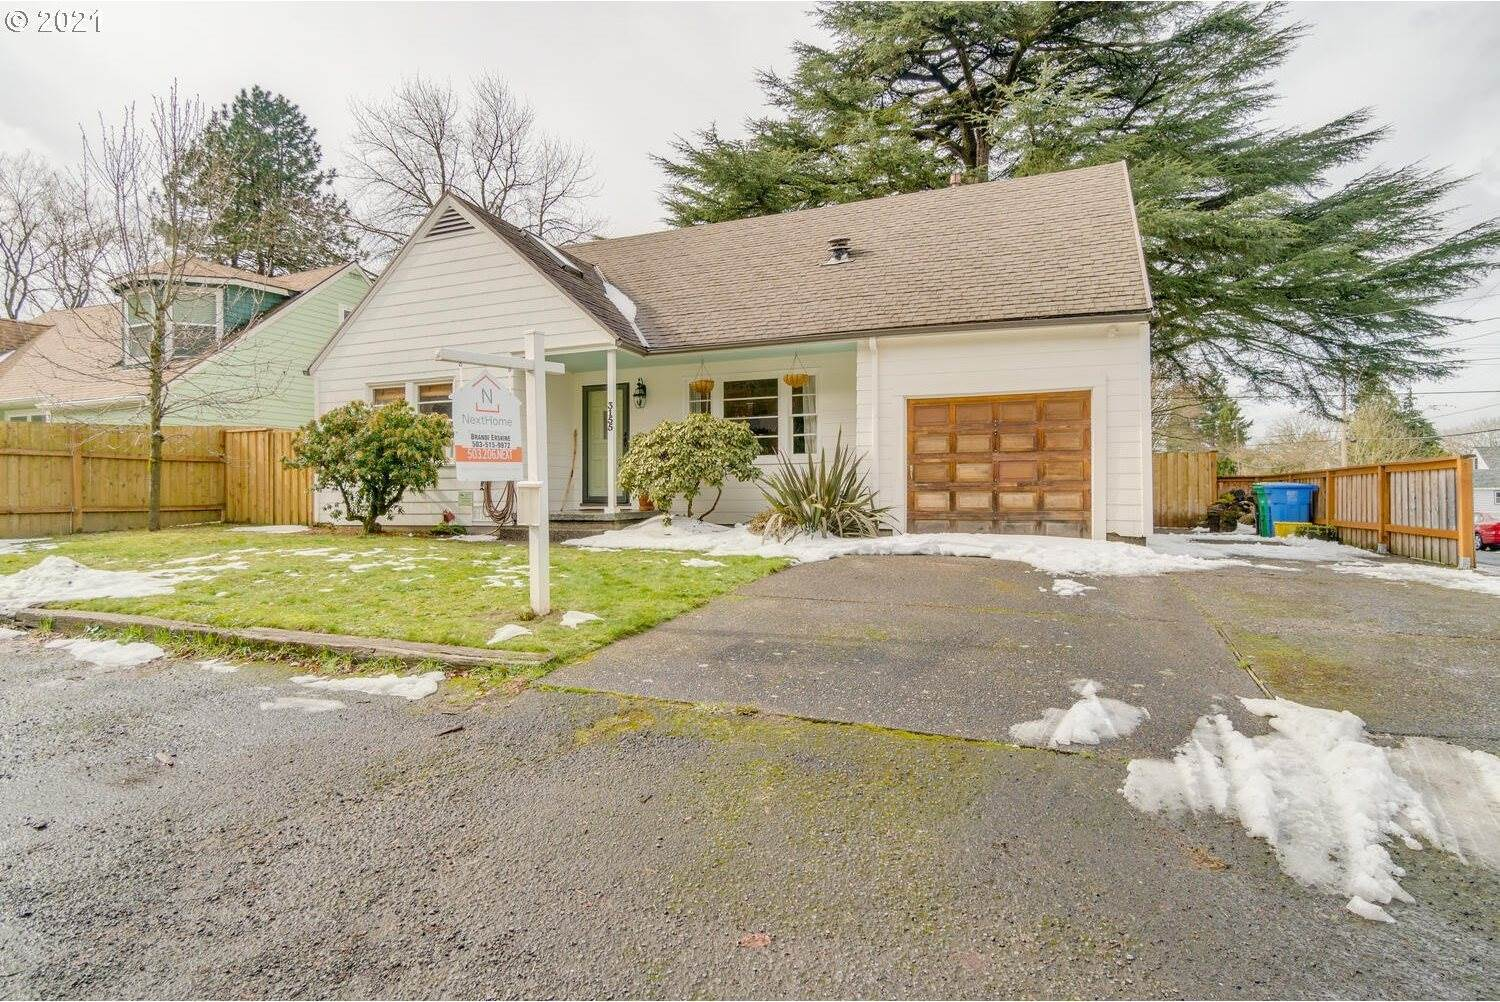 3155 NE 92ND Ave, Portland, OR 97220